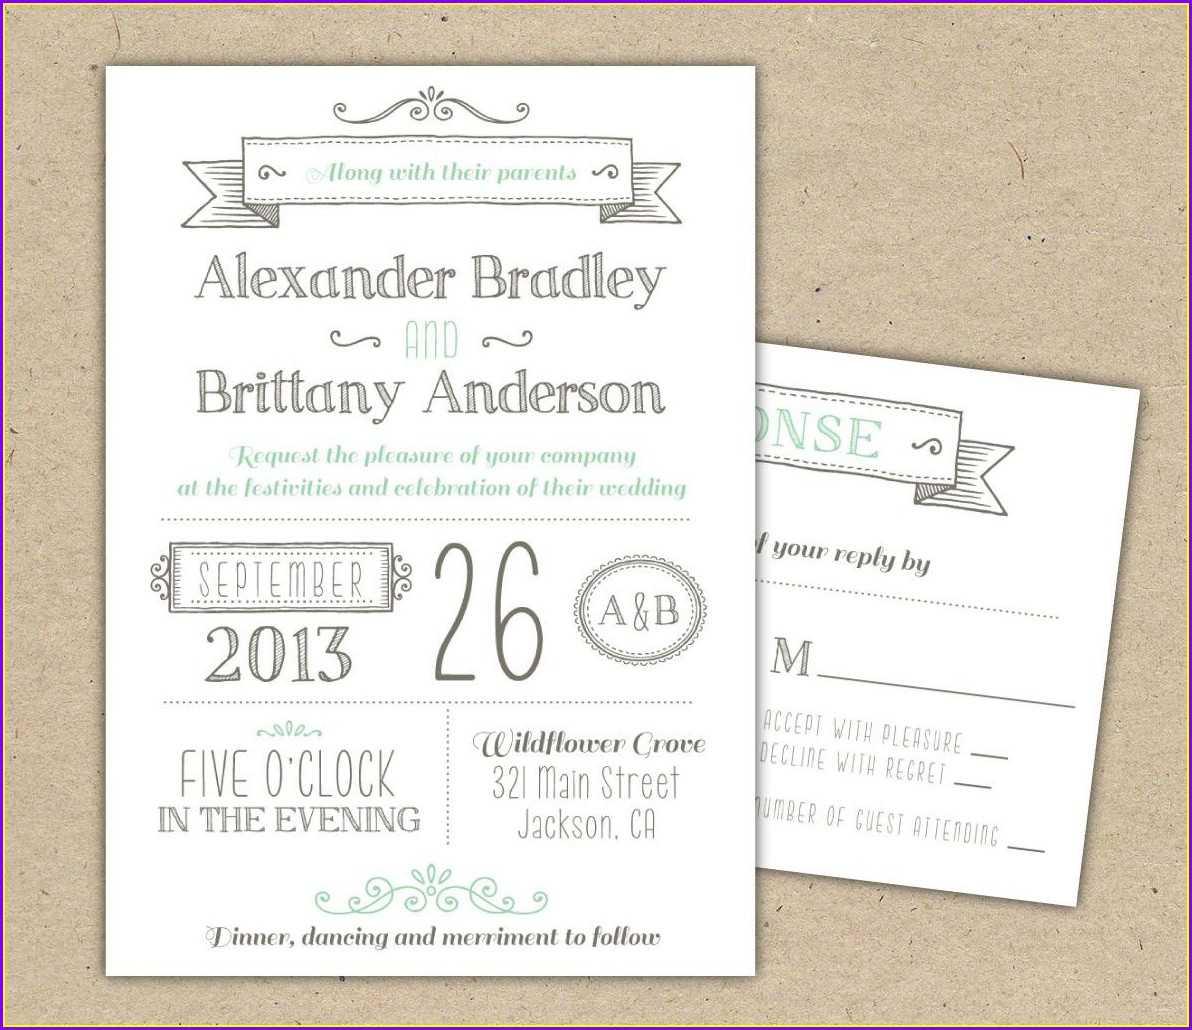 5.5 X 8.5 Invitation Template